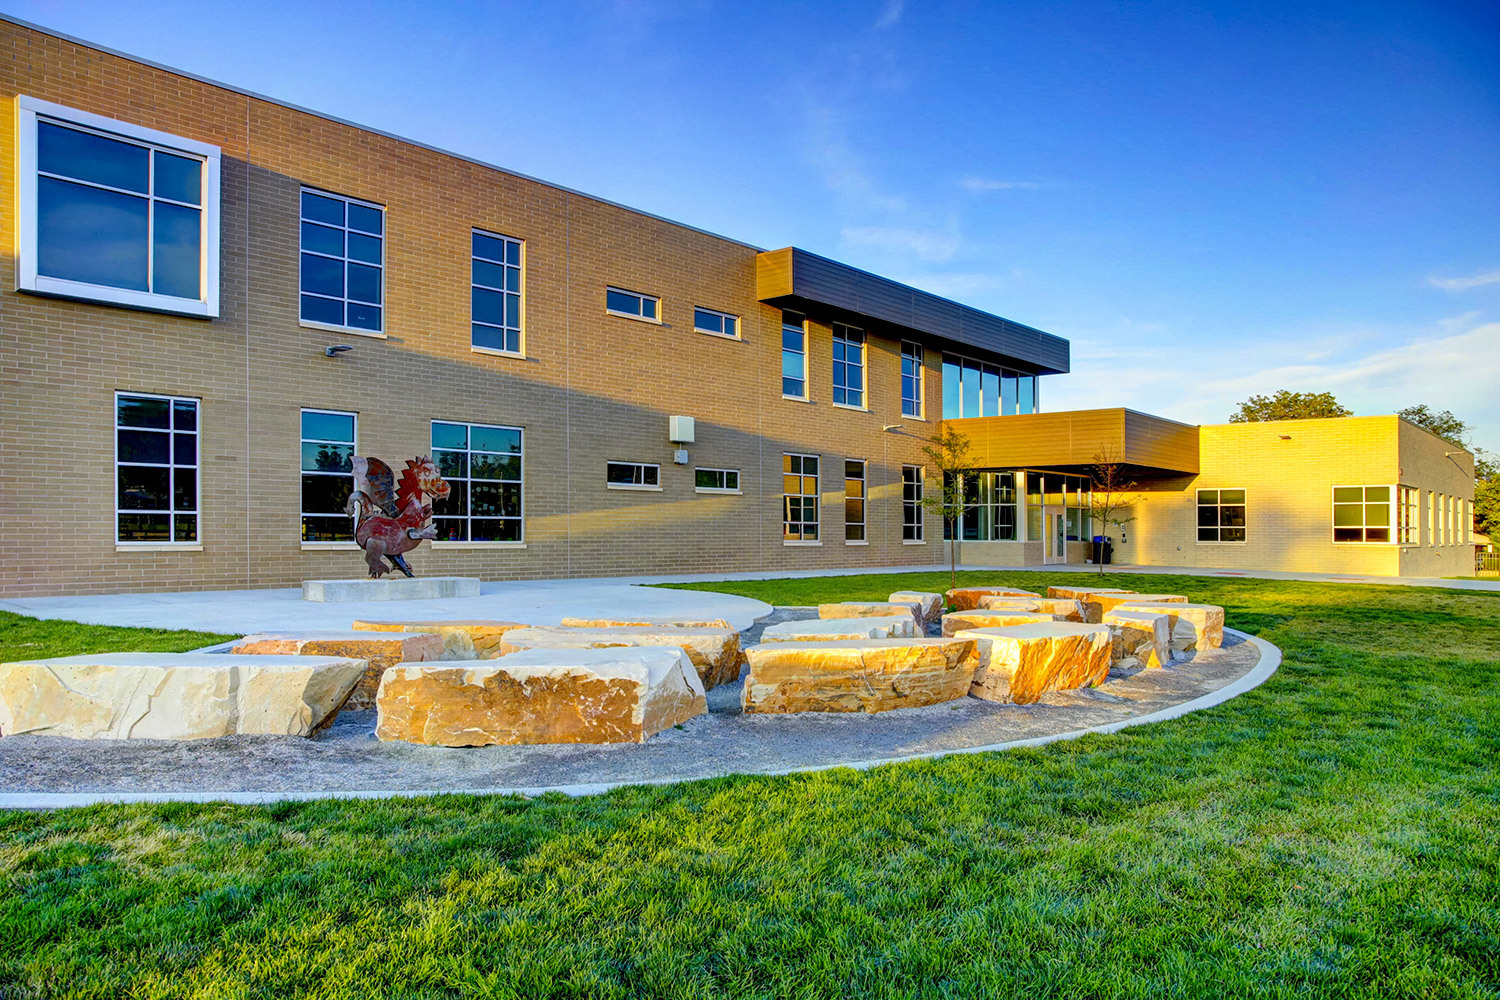 Tubelite used reliable products to complete this storefront and window project at Emerald Elementary School.  Photographer: Matt Puckett